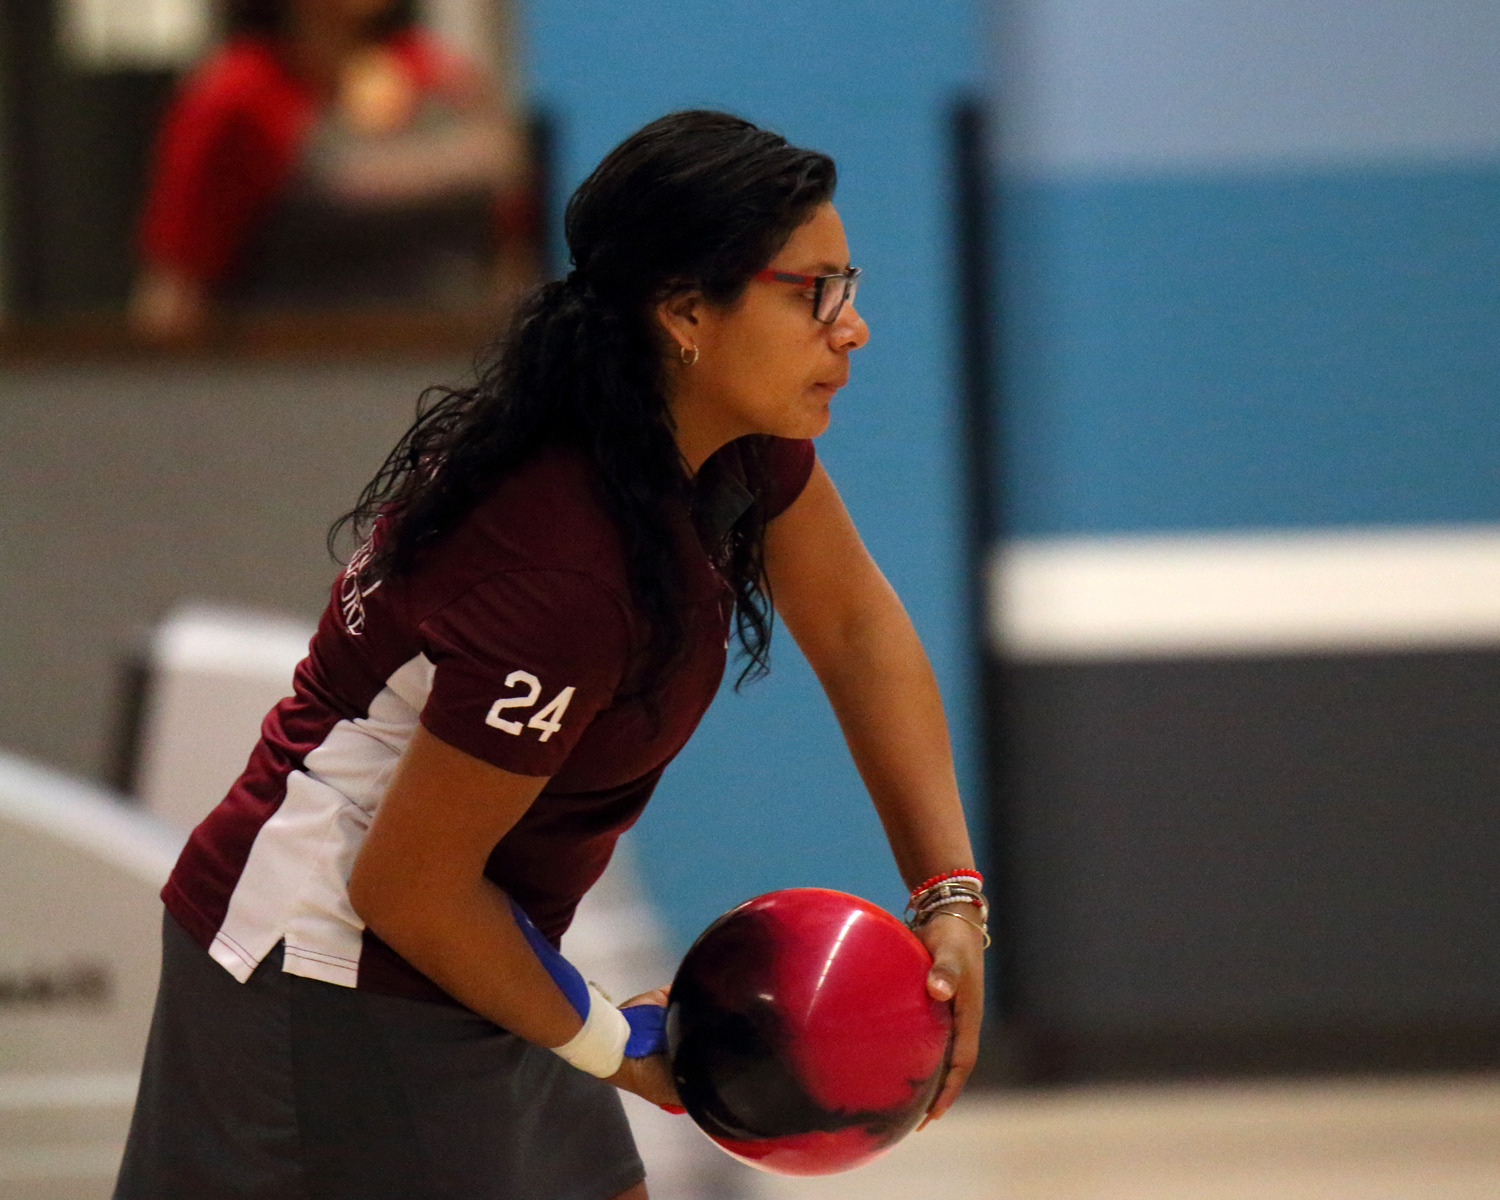 UMES Hawk Seraus Named Finalist For IBMA Bowler of the Year